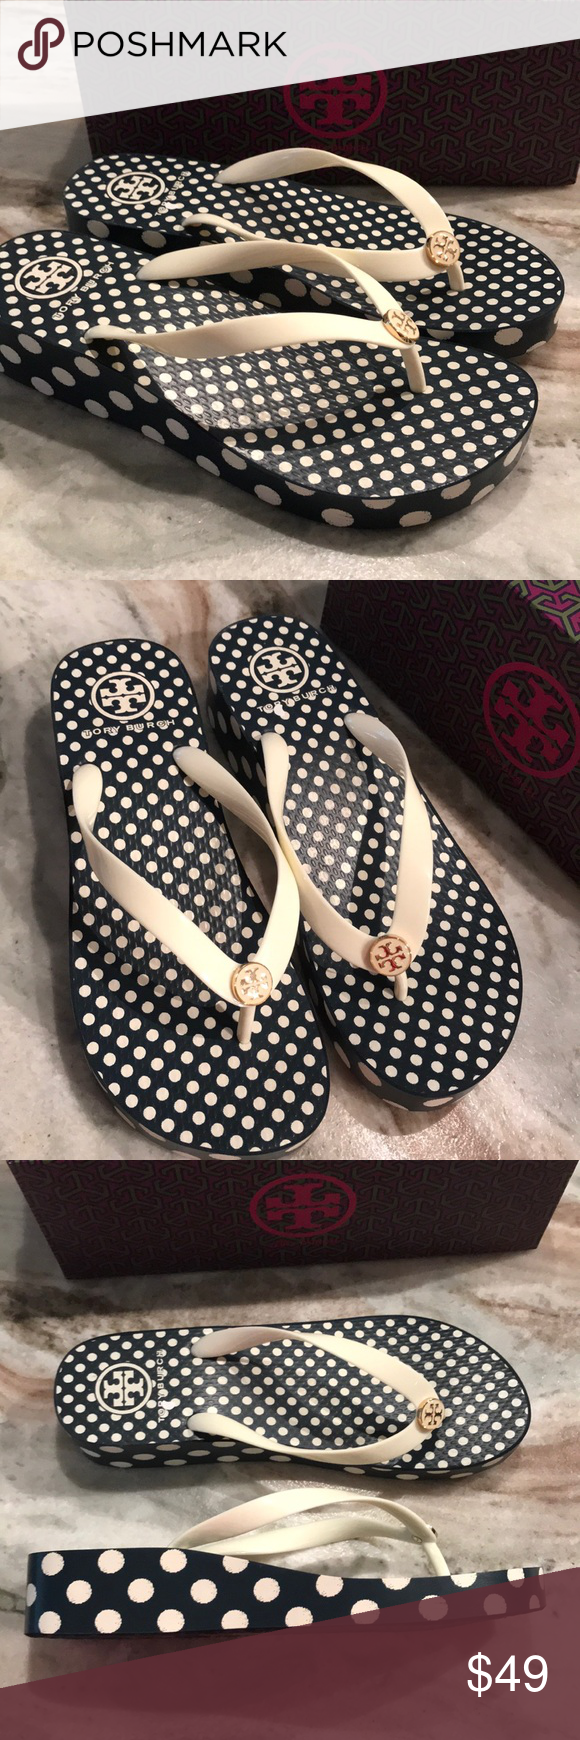 55915d230abc NIB TORY BURCH WEDGE FLIP FLOPS sz 9 10 AUTHENTIC AND BRAND NEW IN BOX SIZES